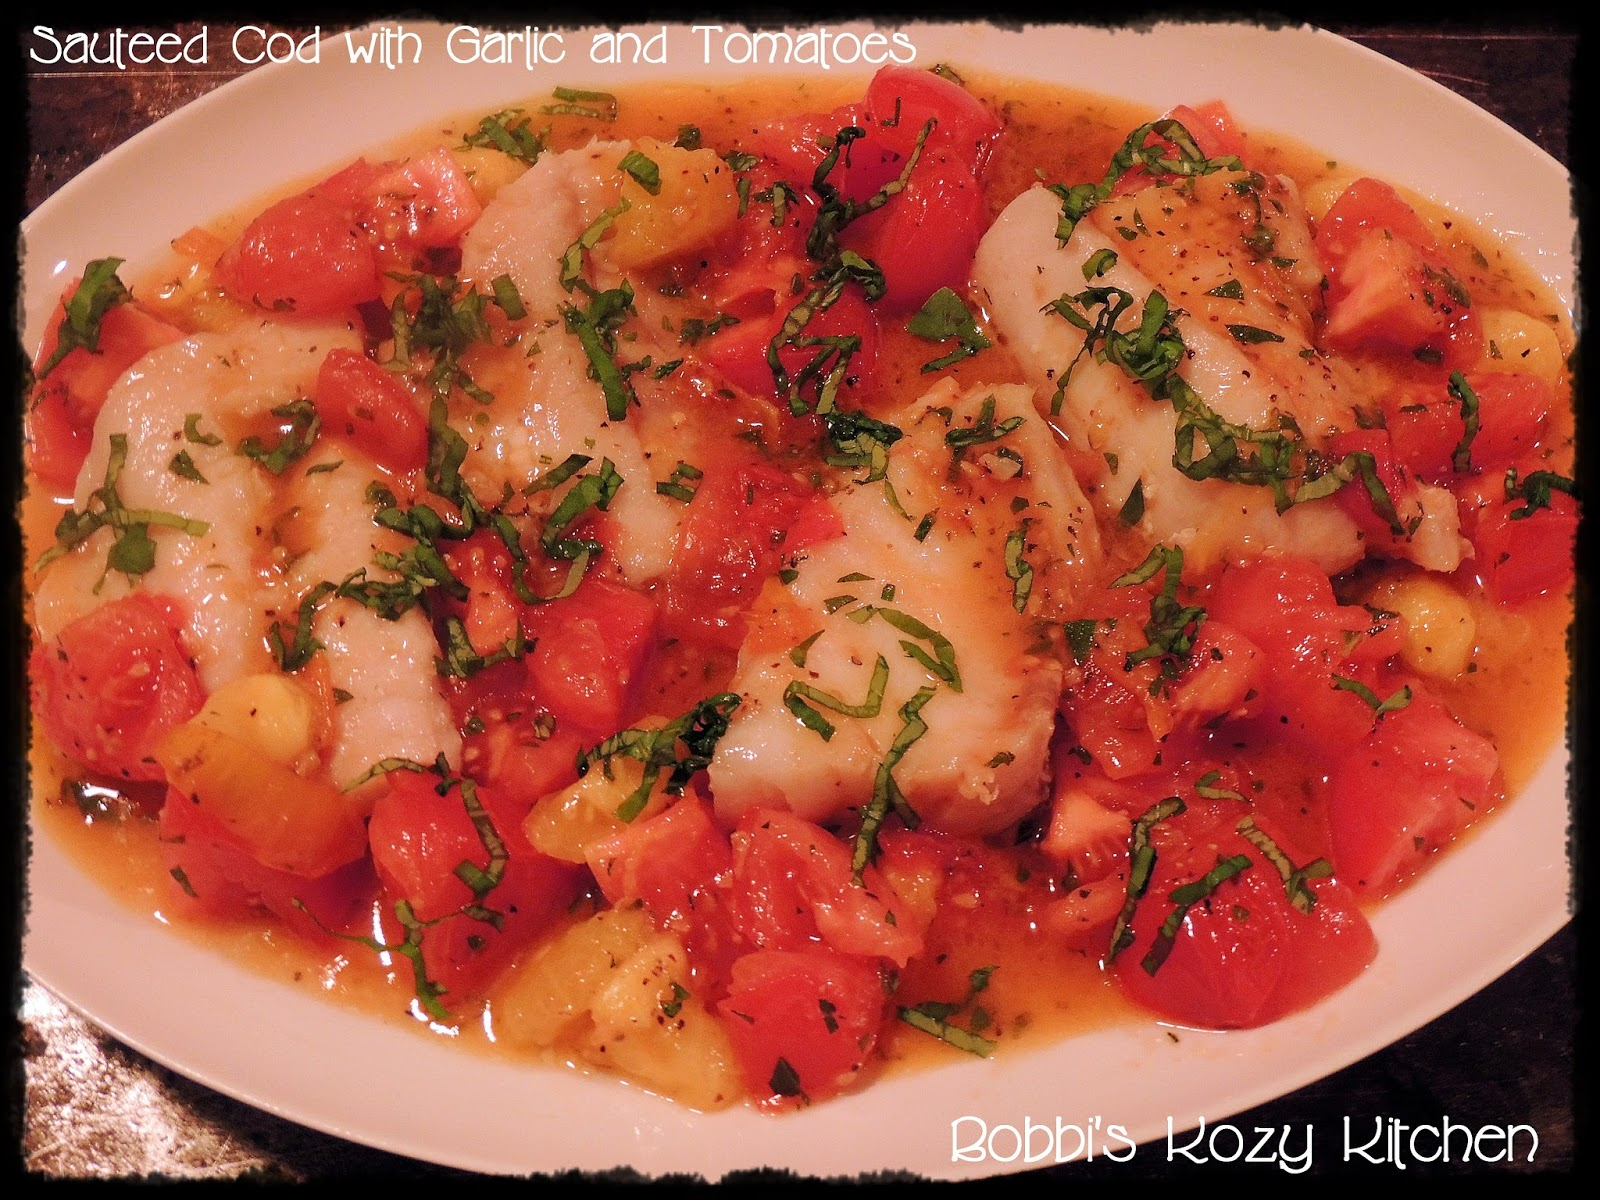 Sauteed Cod with Garlic and